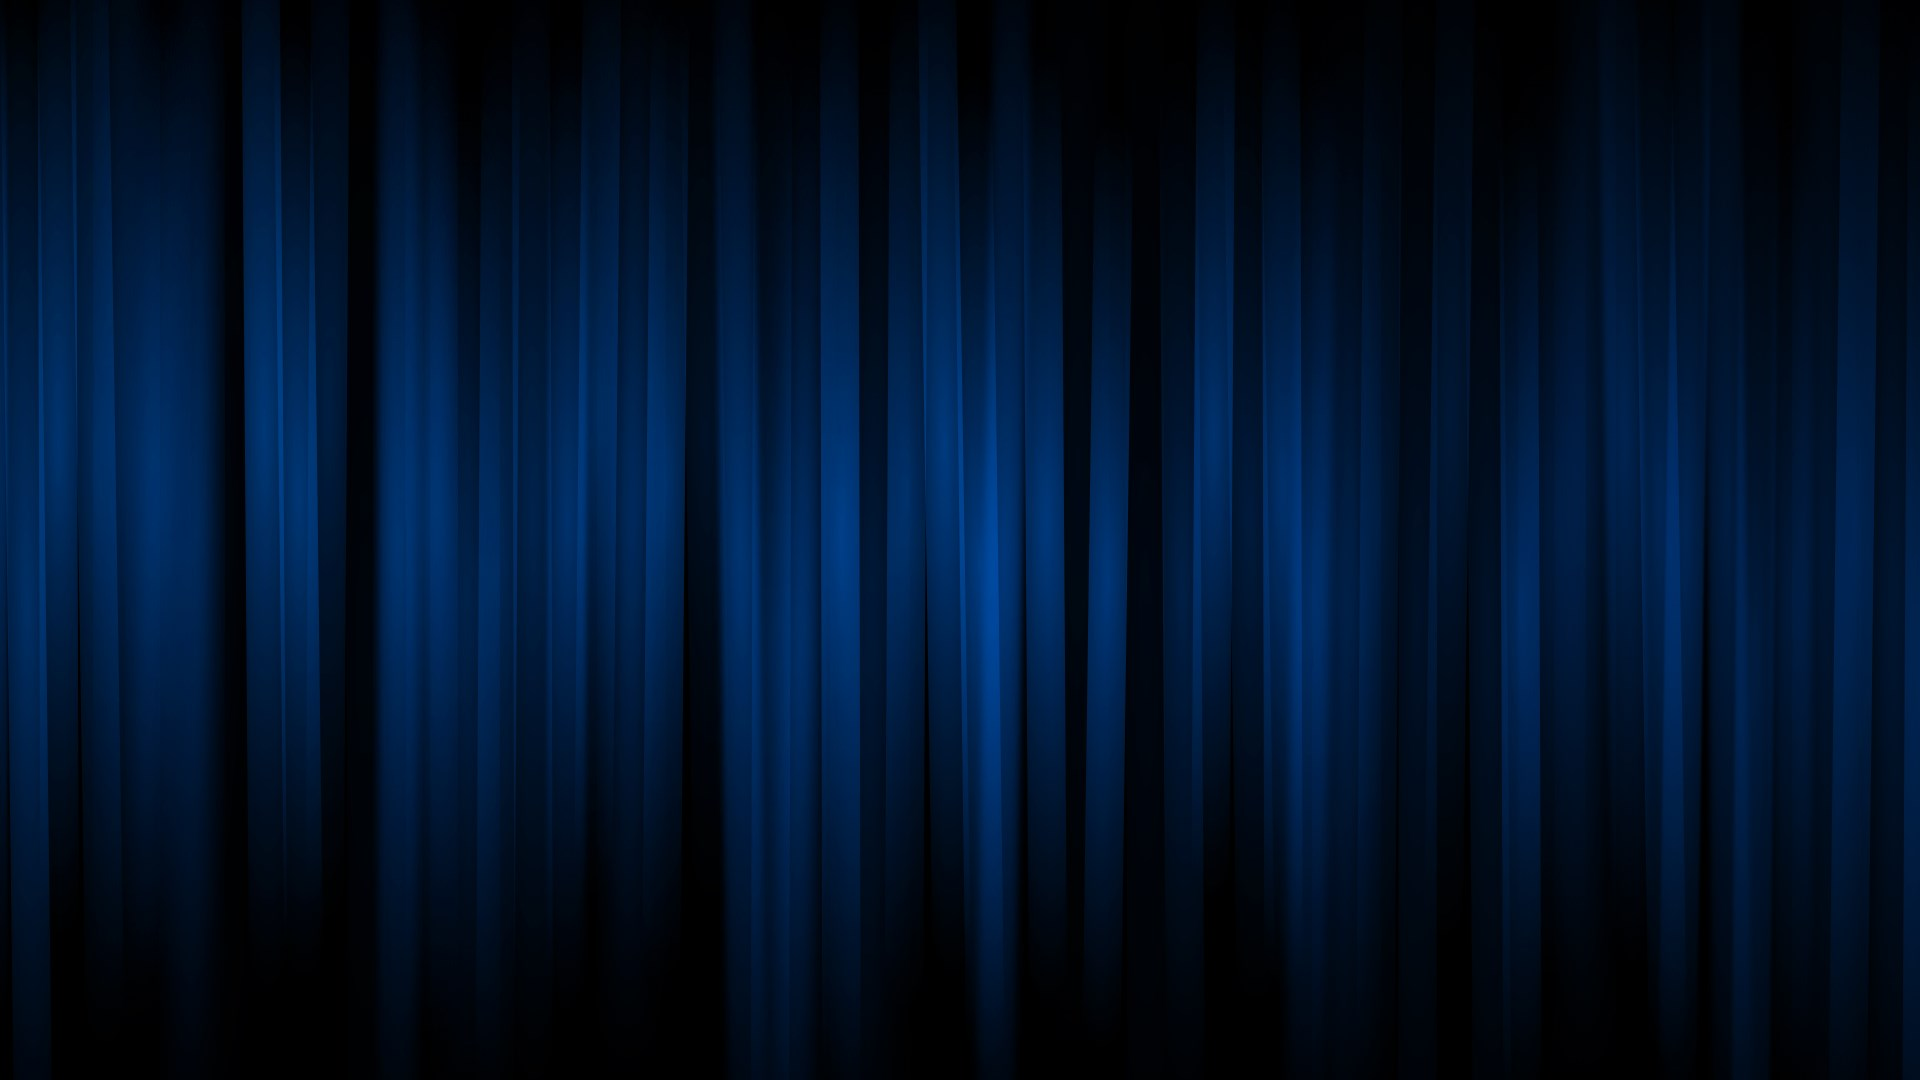 1920x1080-free-screensaver-for-blue-wallpaper-wpc900742